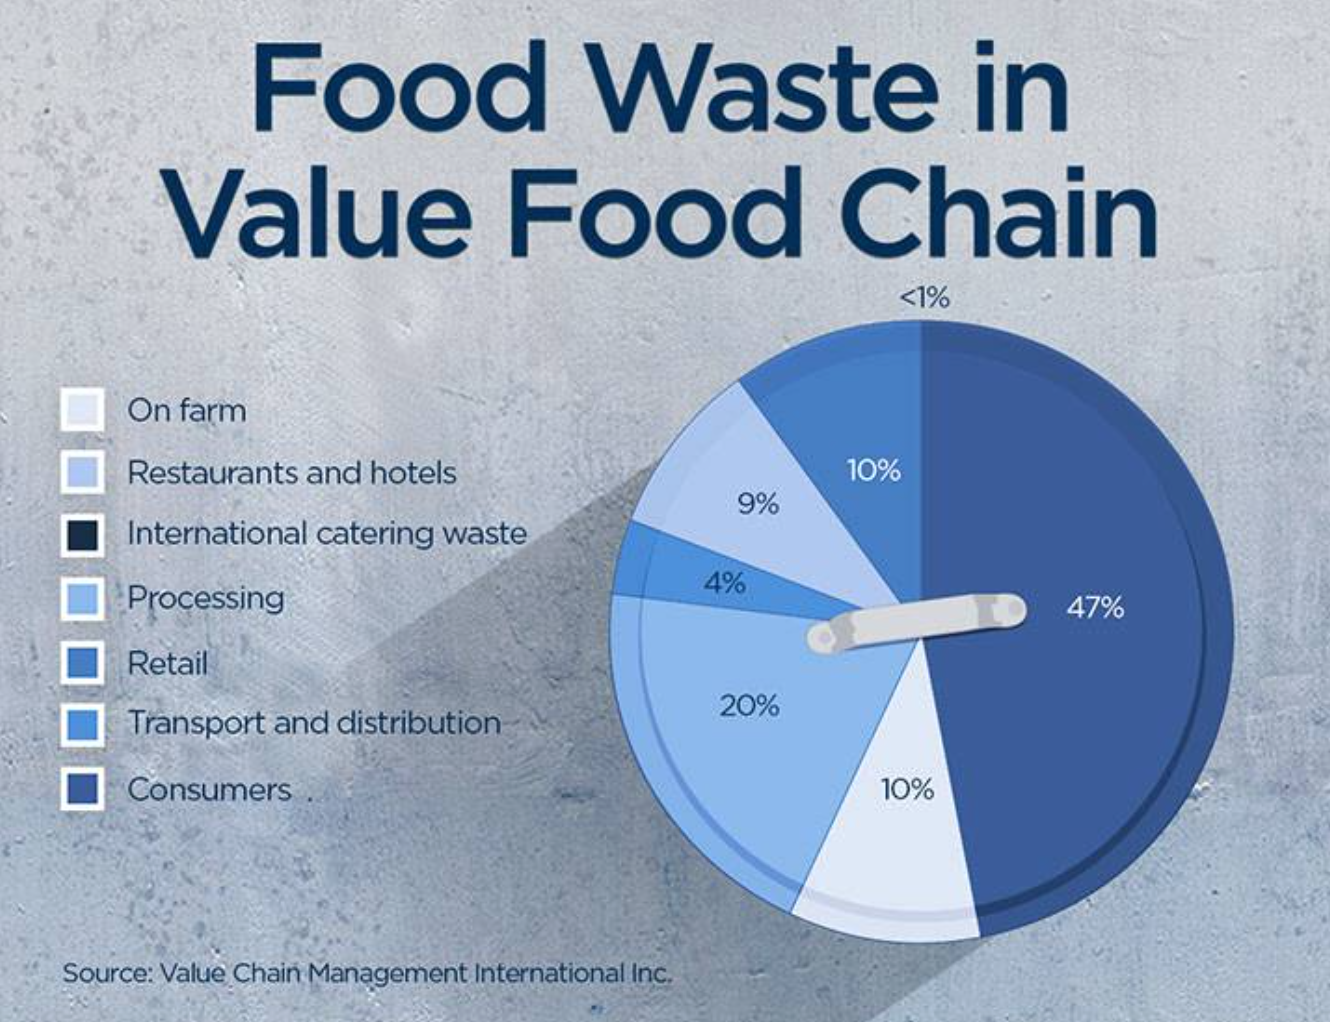 Food Waste in Value Food Chain